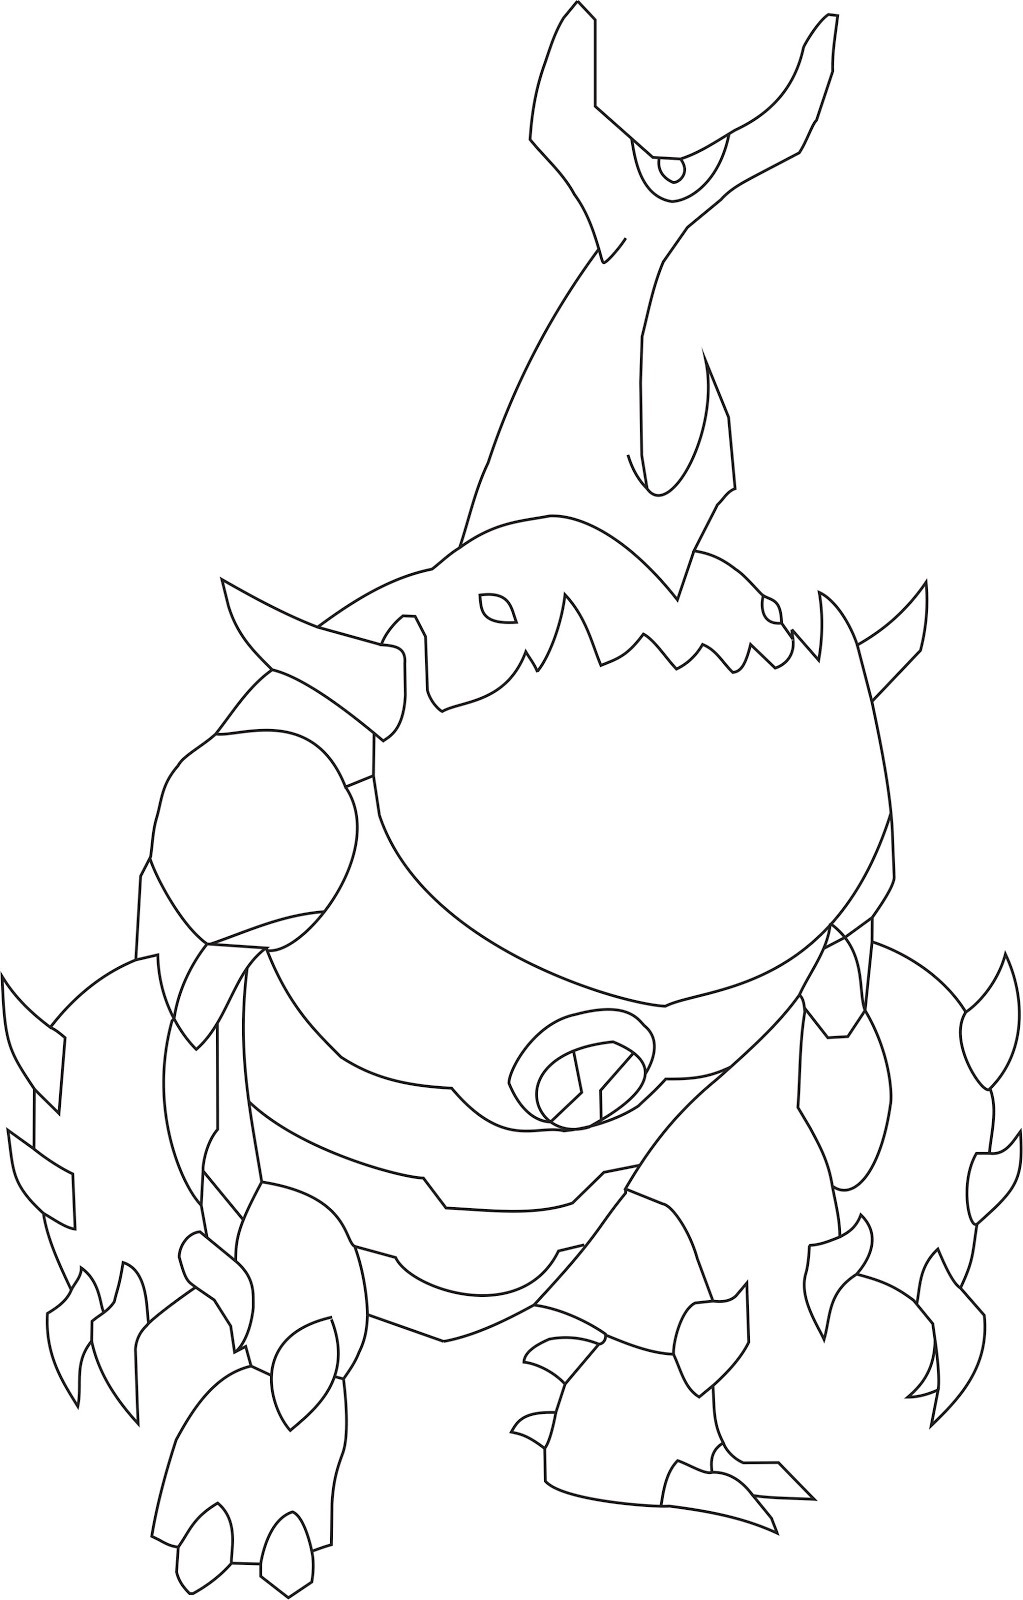 xlr8 coloring pages - photo#32